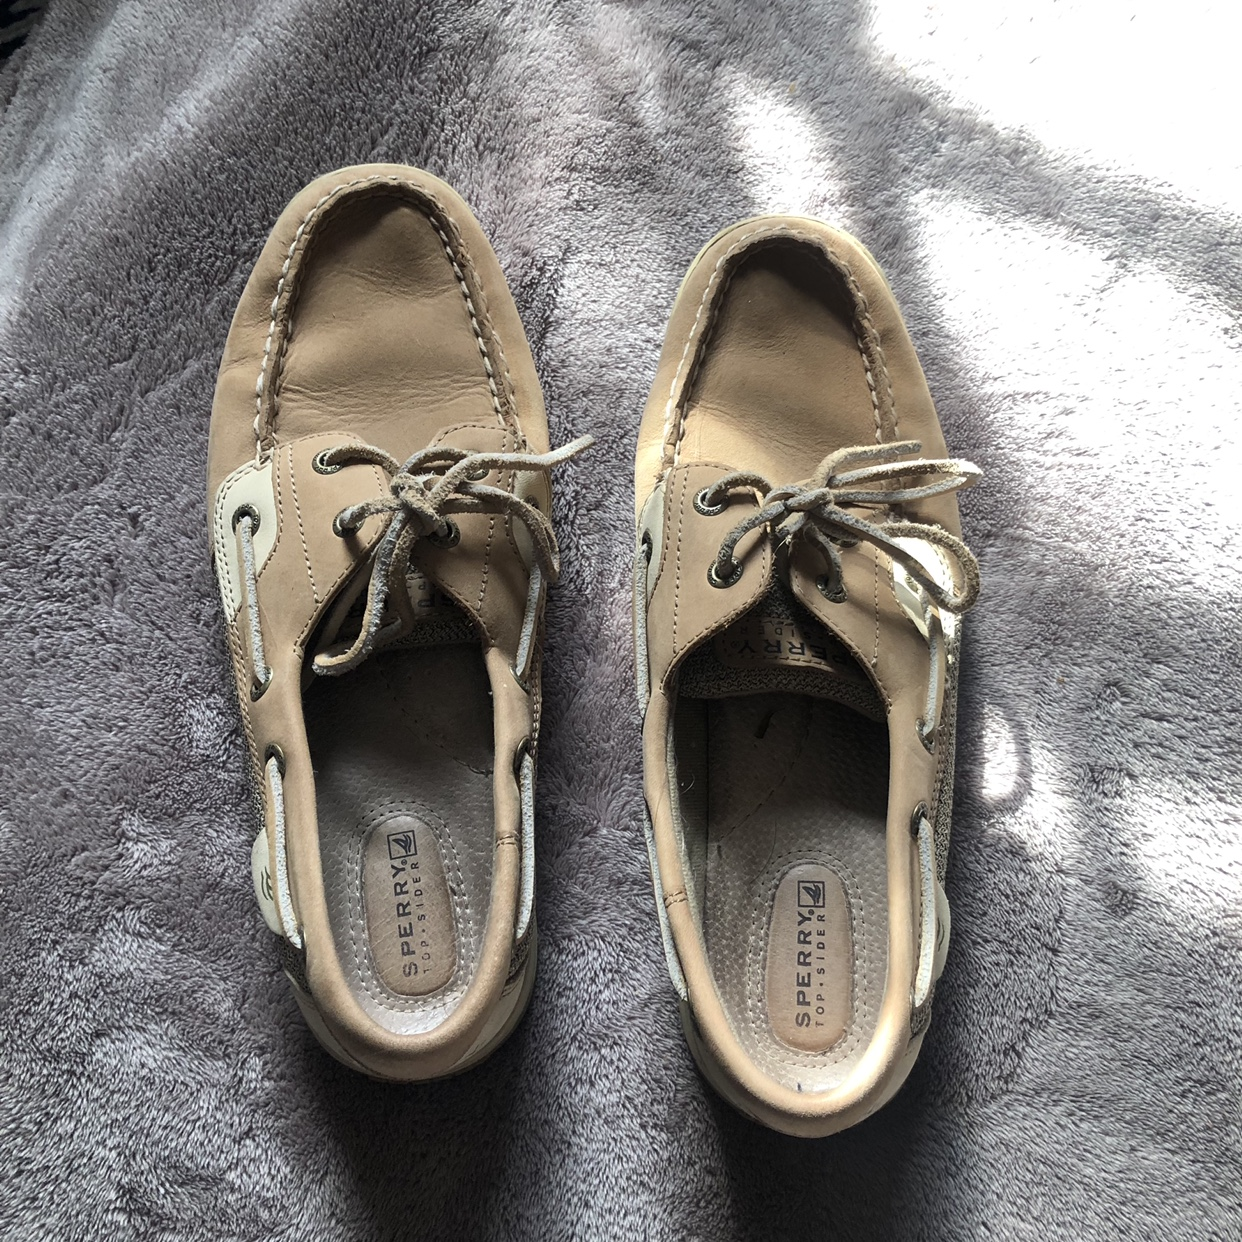 Sperry Top Sider Boat Shoes Non Marking Size 9 Depop